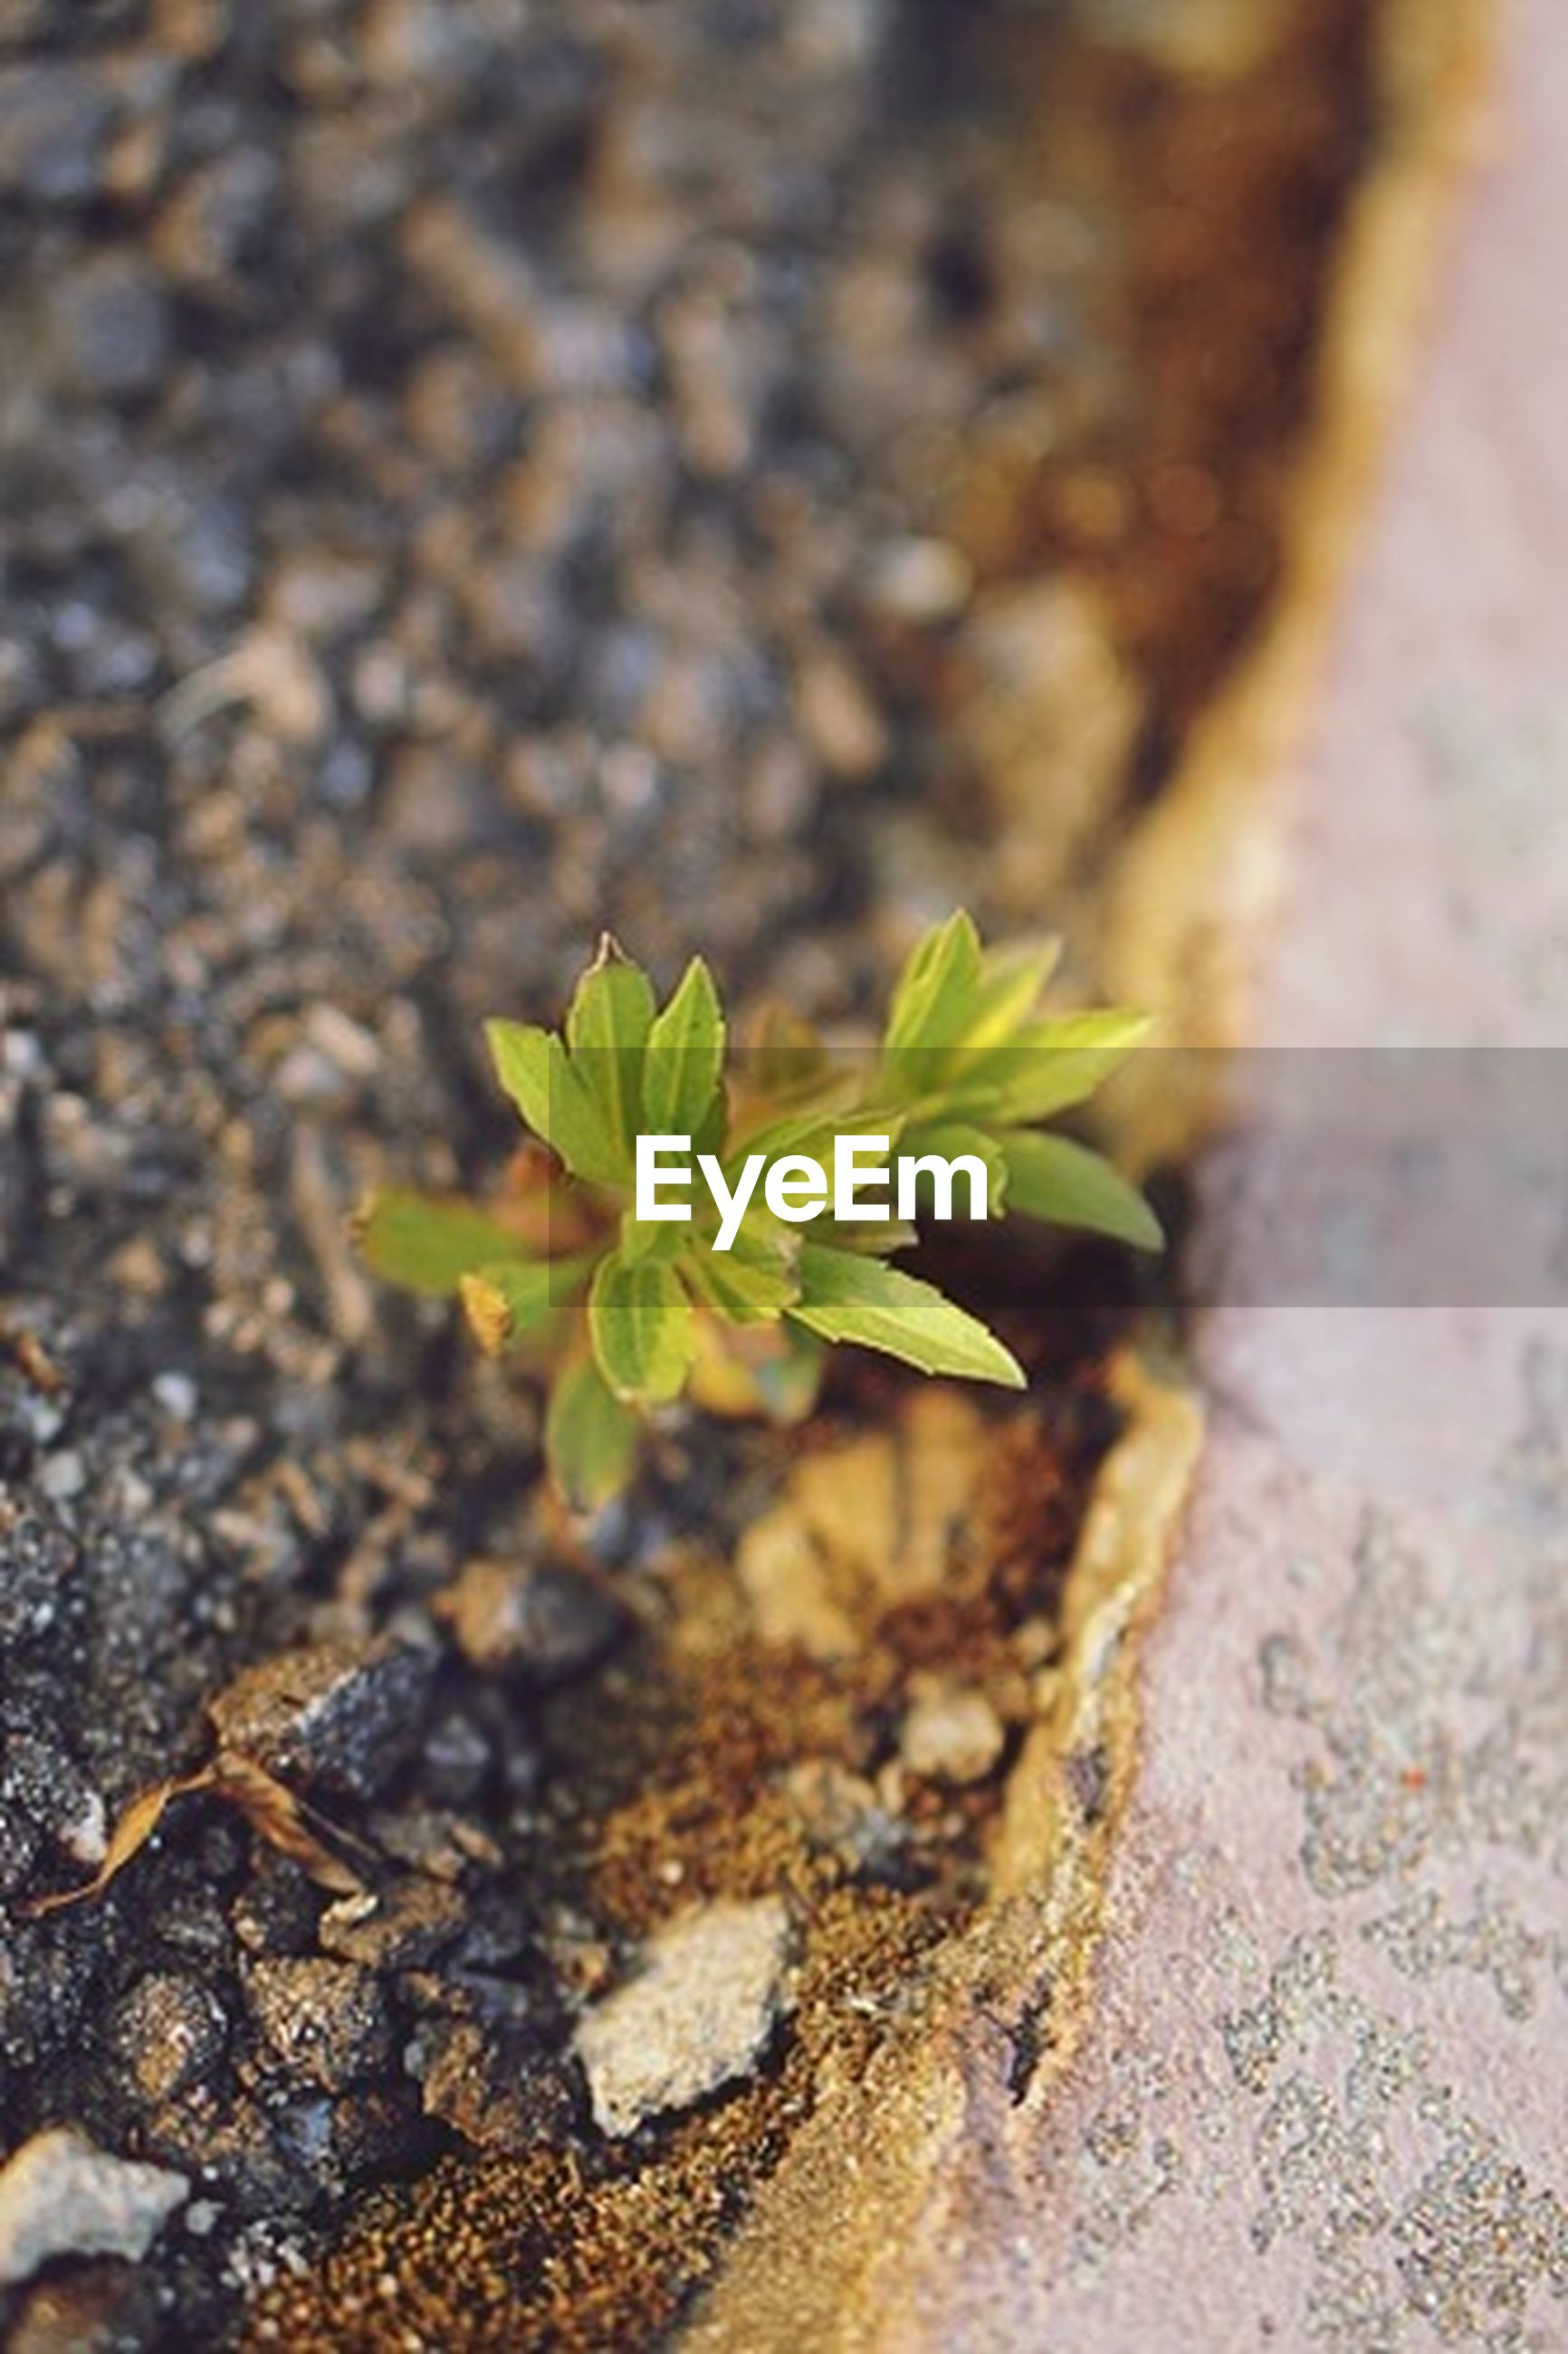 growth, leaf, plant, nature, close-up, green color, selective focus, growing, focus on foreground, outdoors, day, textured, moss, high angle view, no people, rock - object, fragility, beauty in nature, sunlight, rough